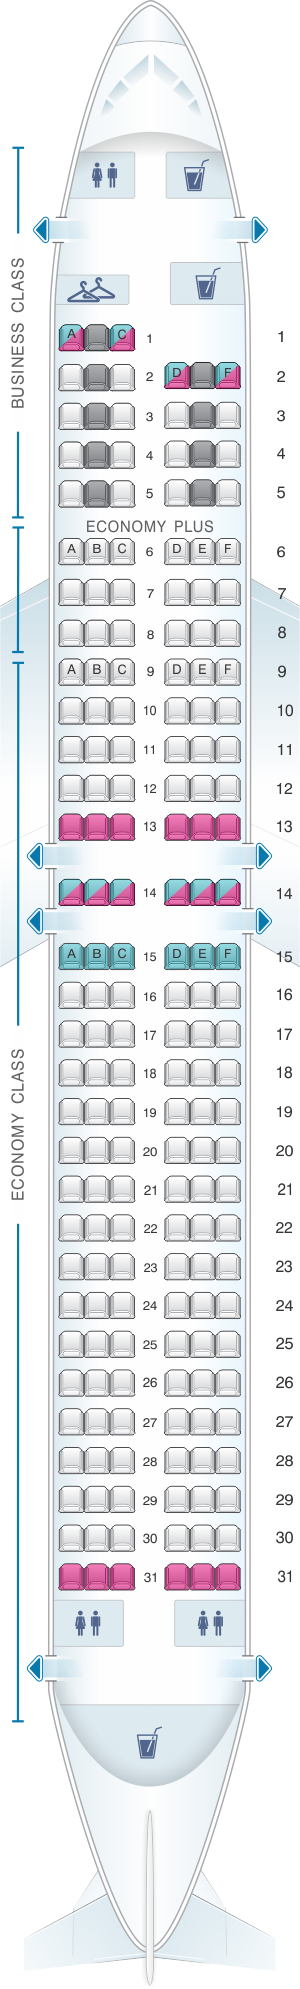 Seat map for LOT Polish Airlines Boeing B737 800